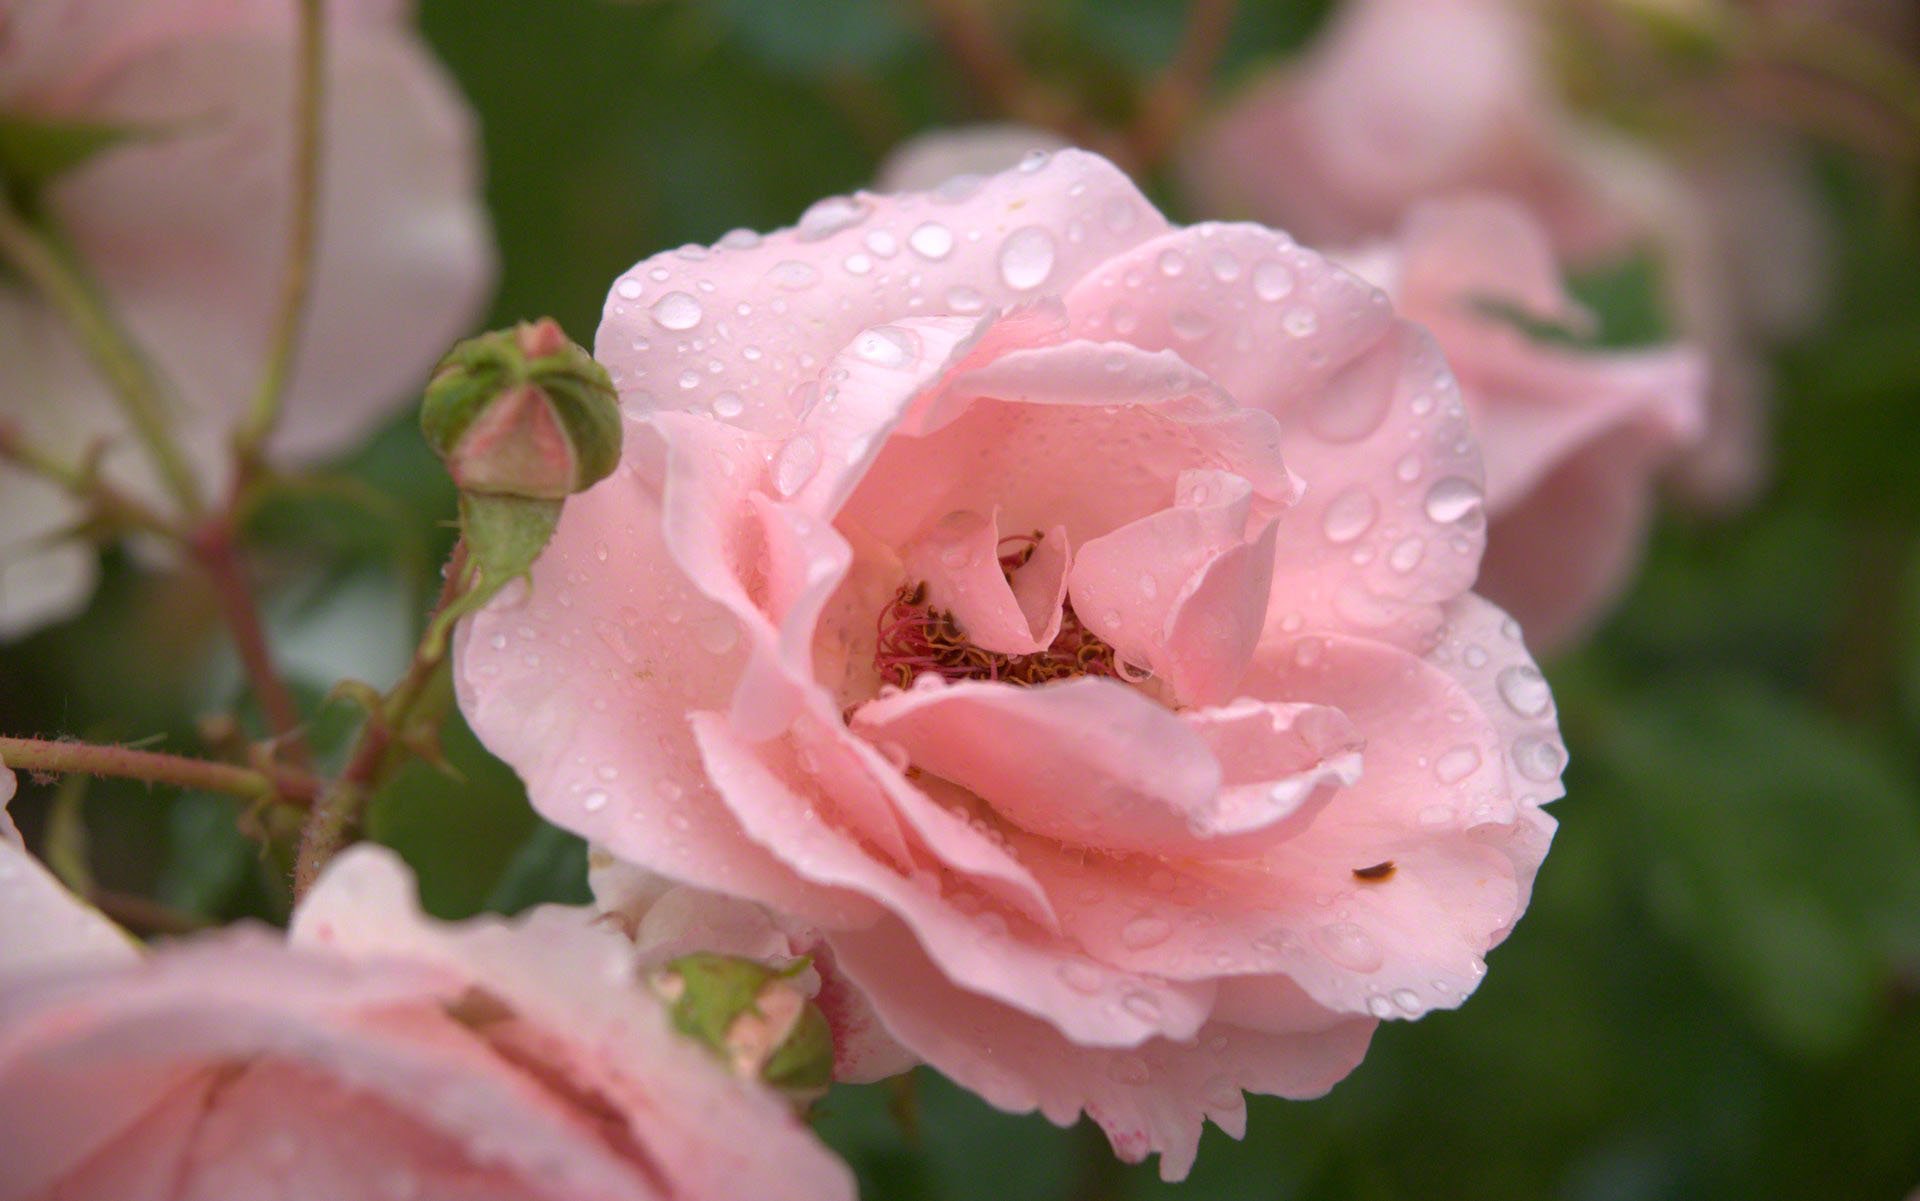 http://www.fabiovisentin.com/photography/photo/12/pink-rose-waterdrops-04386.jpg